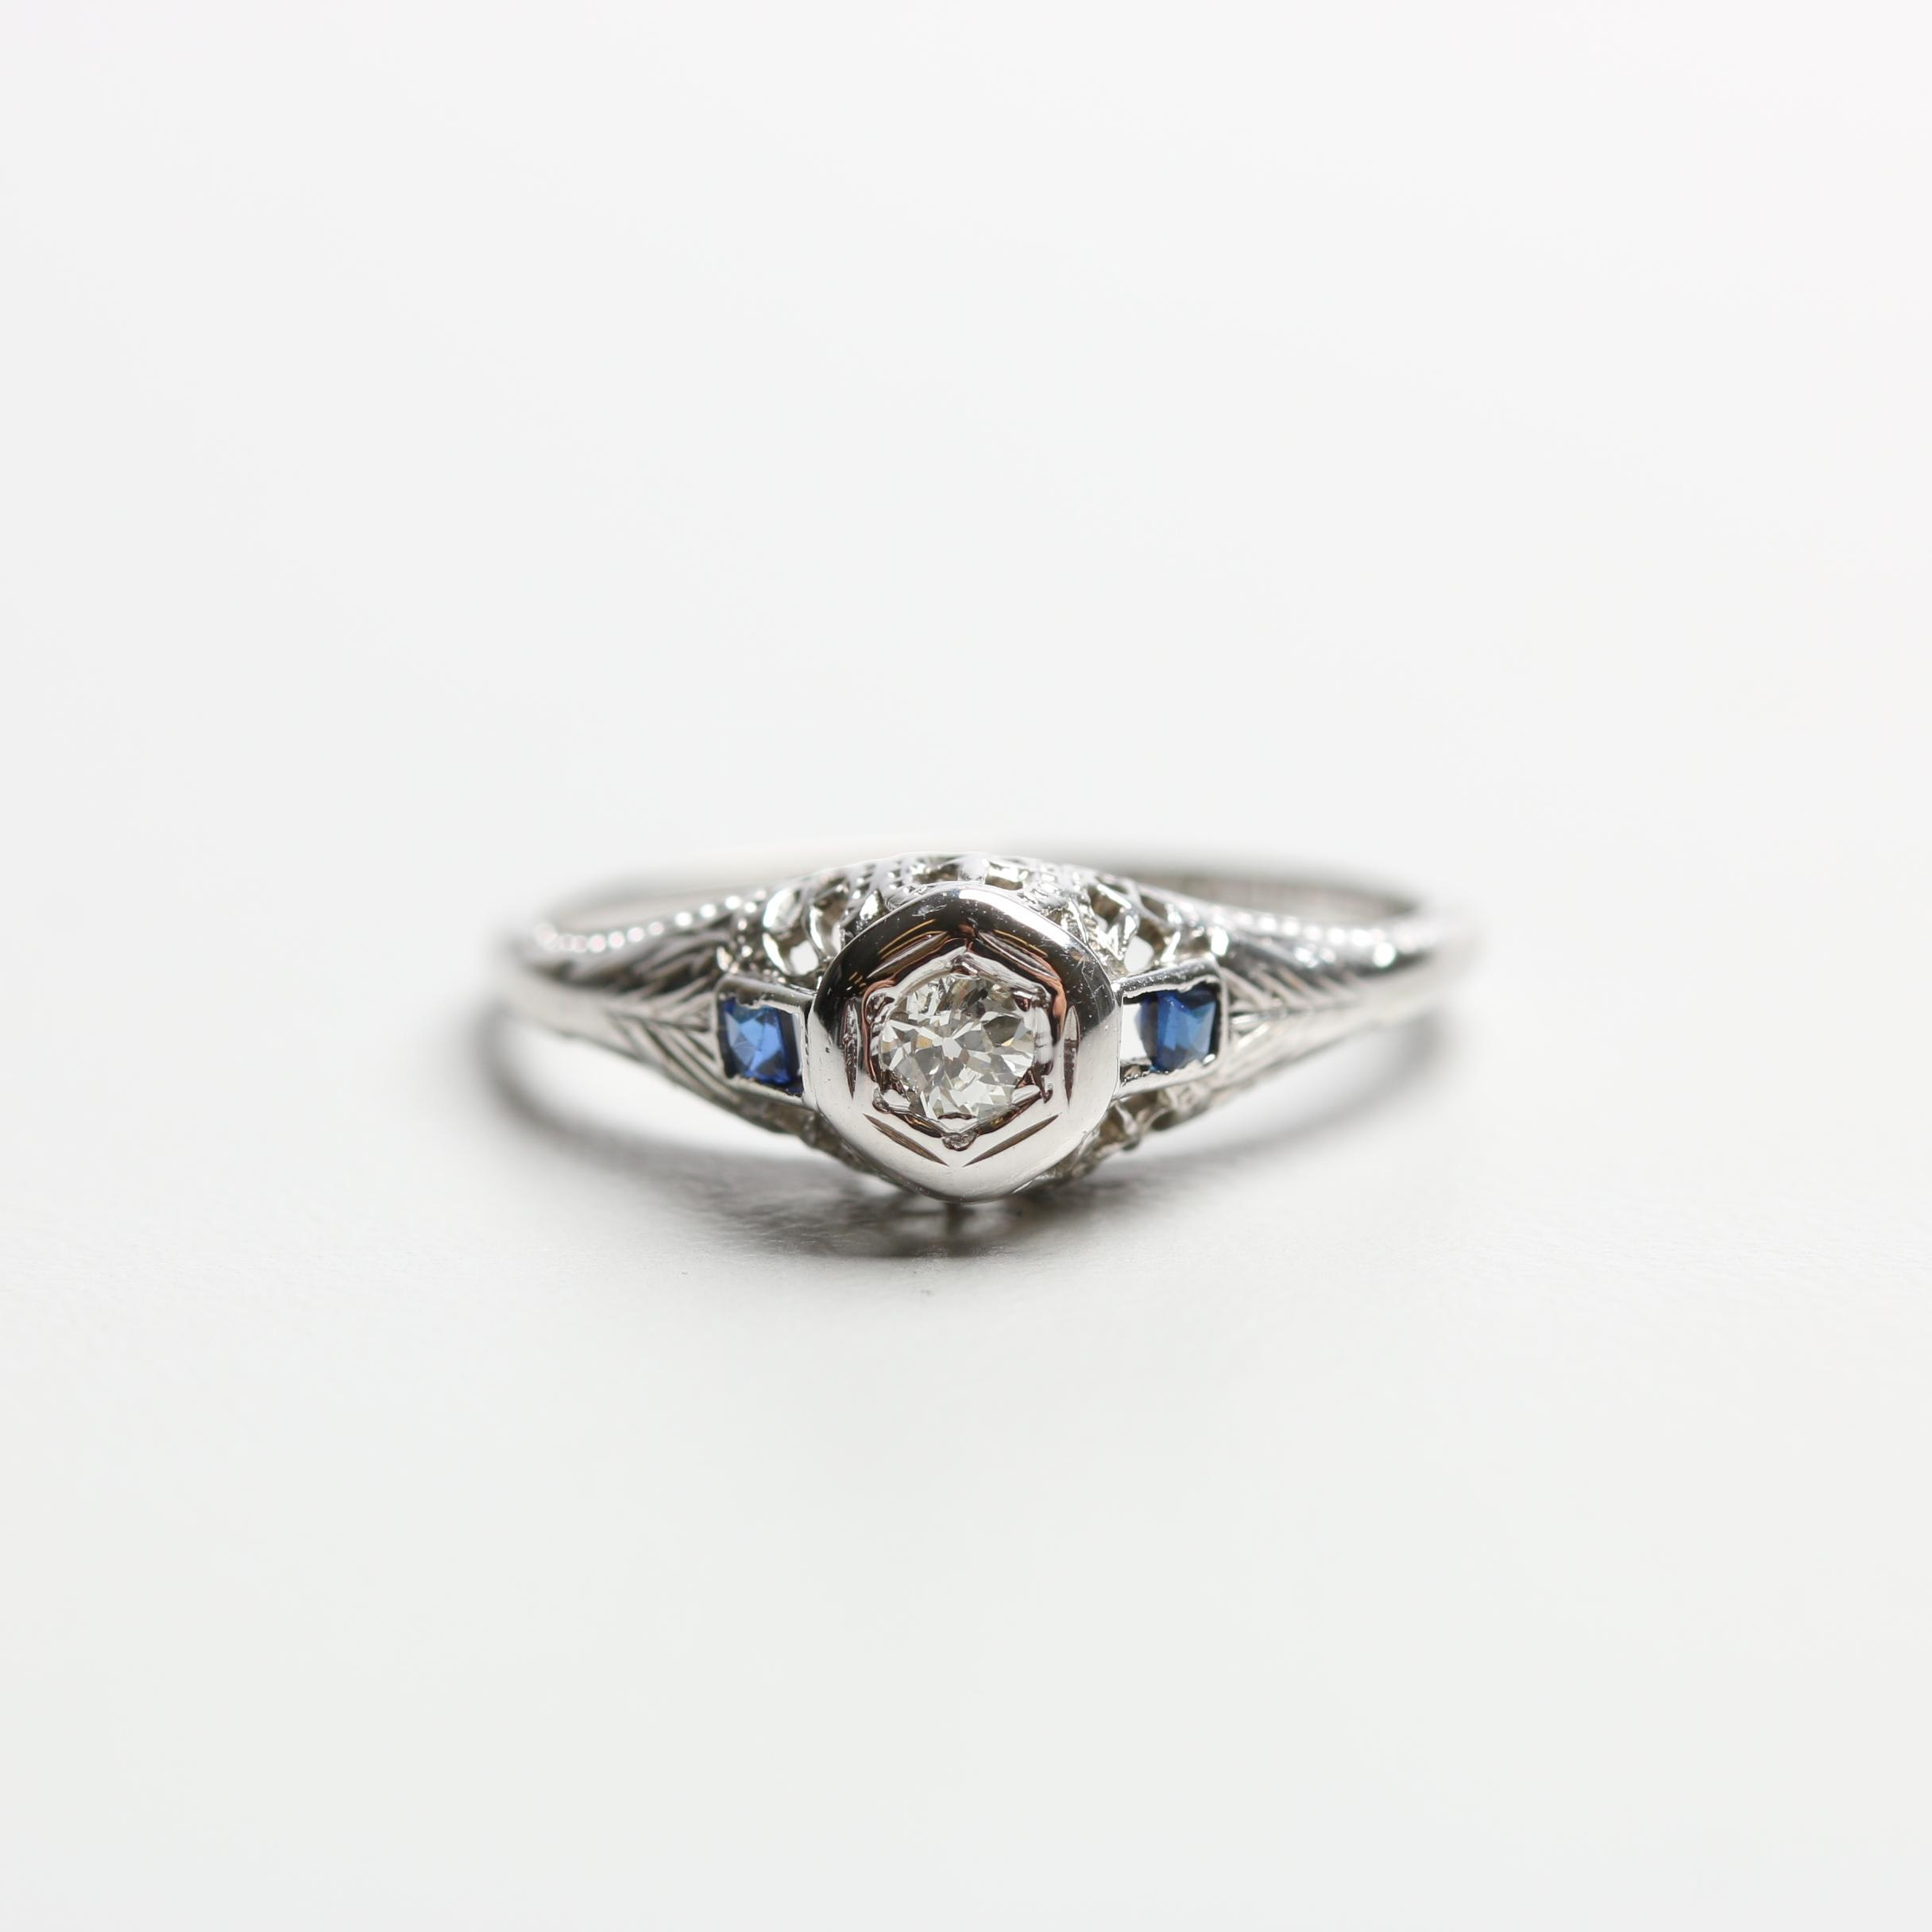 Art Deco Belais Brothers 18K White Gold Diamond and Synthetic Sapphire Ring